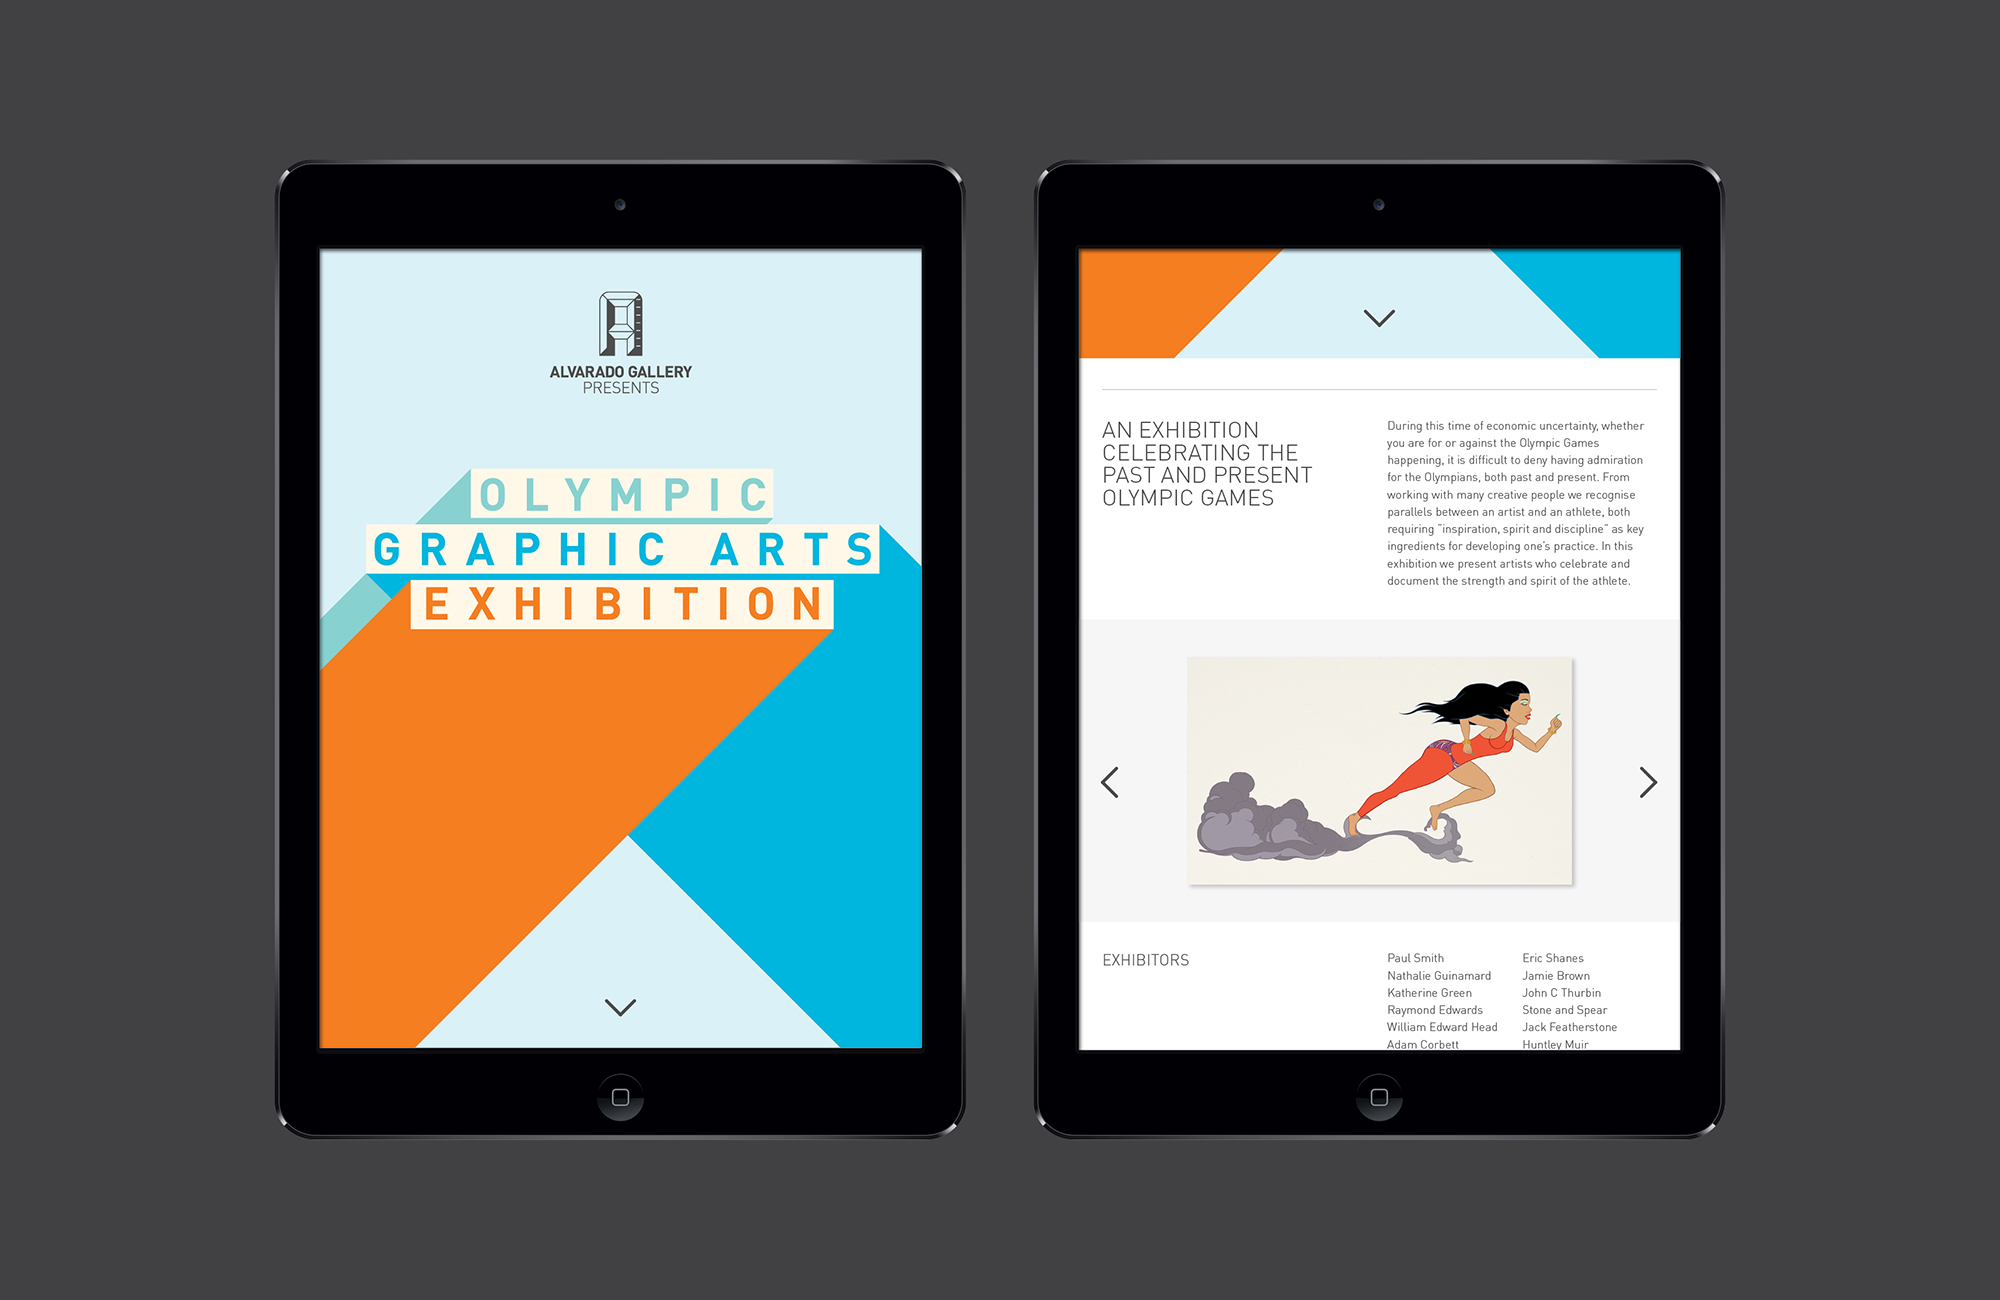 All Works Co._Graphic_Design_Studio_London_OlympicGraphicsArtsExhibition_Campaign_Digital_Website_01